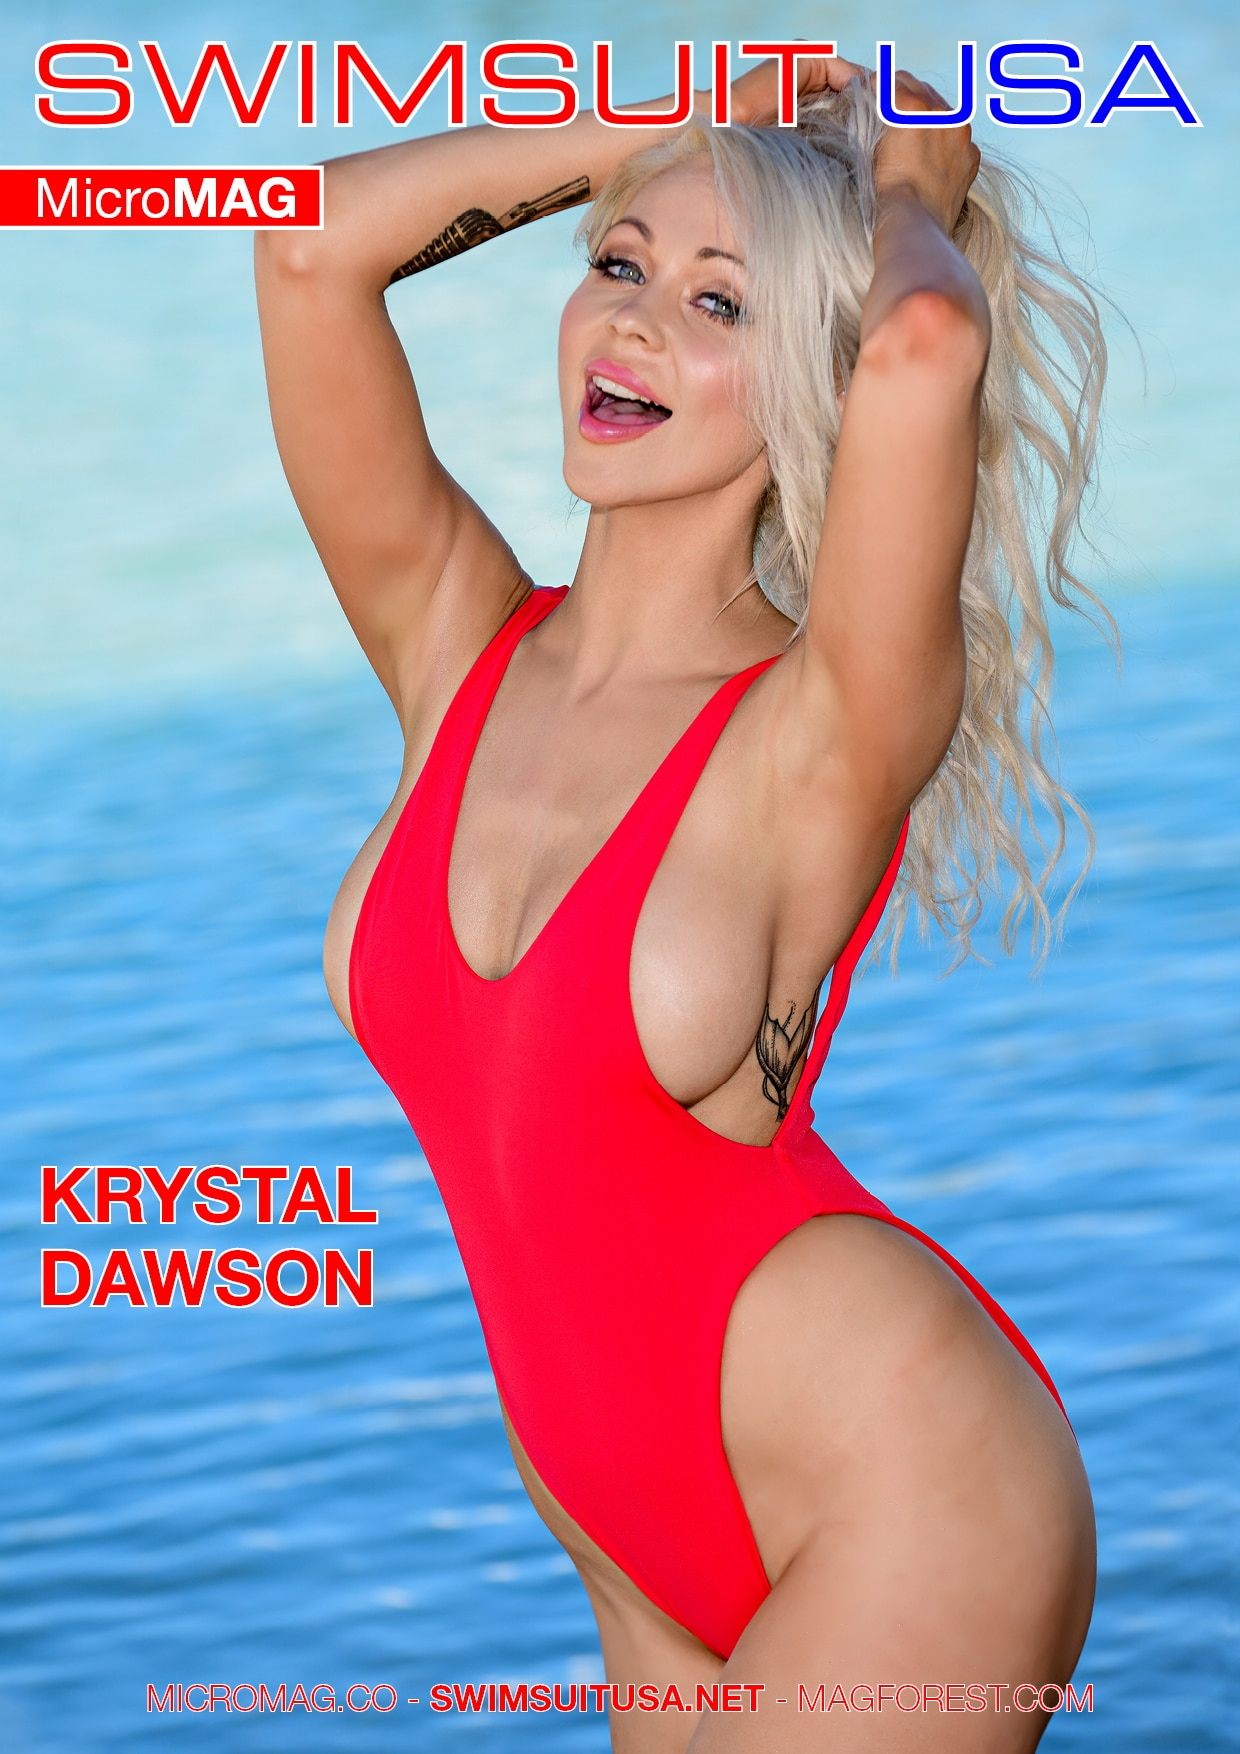 Swimsuit Usa Micromag – Krystal Dawson – Issue 2